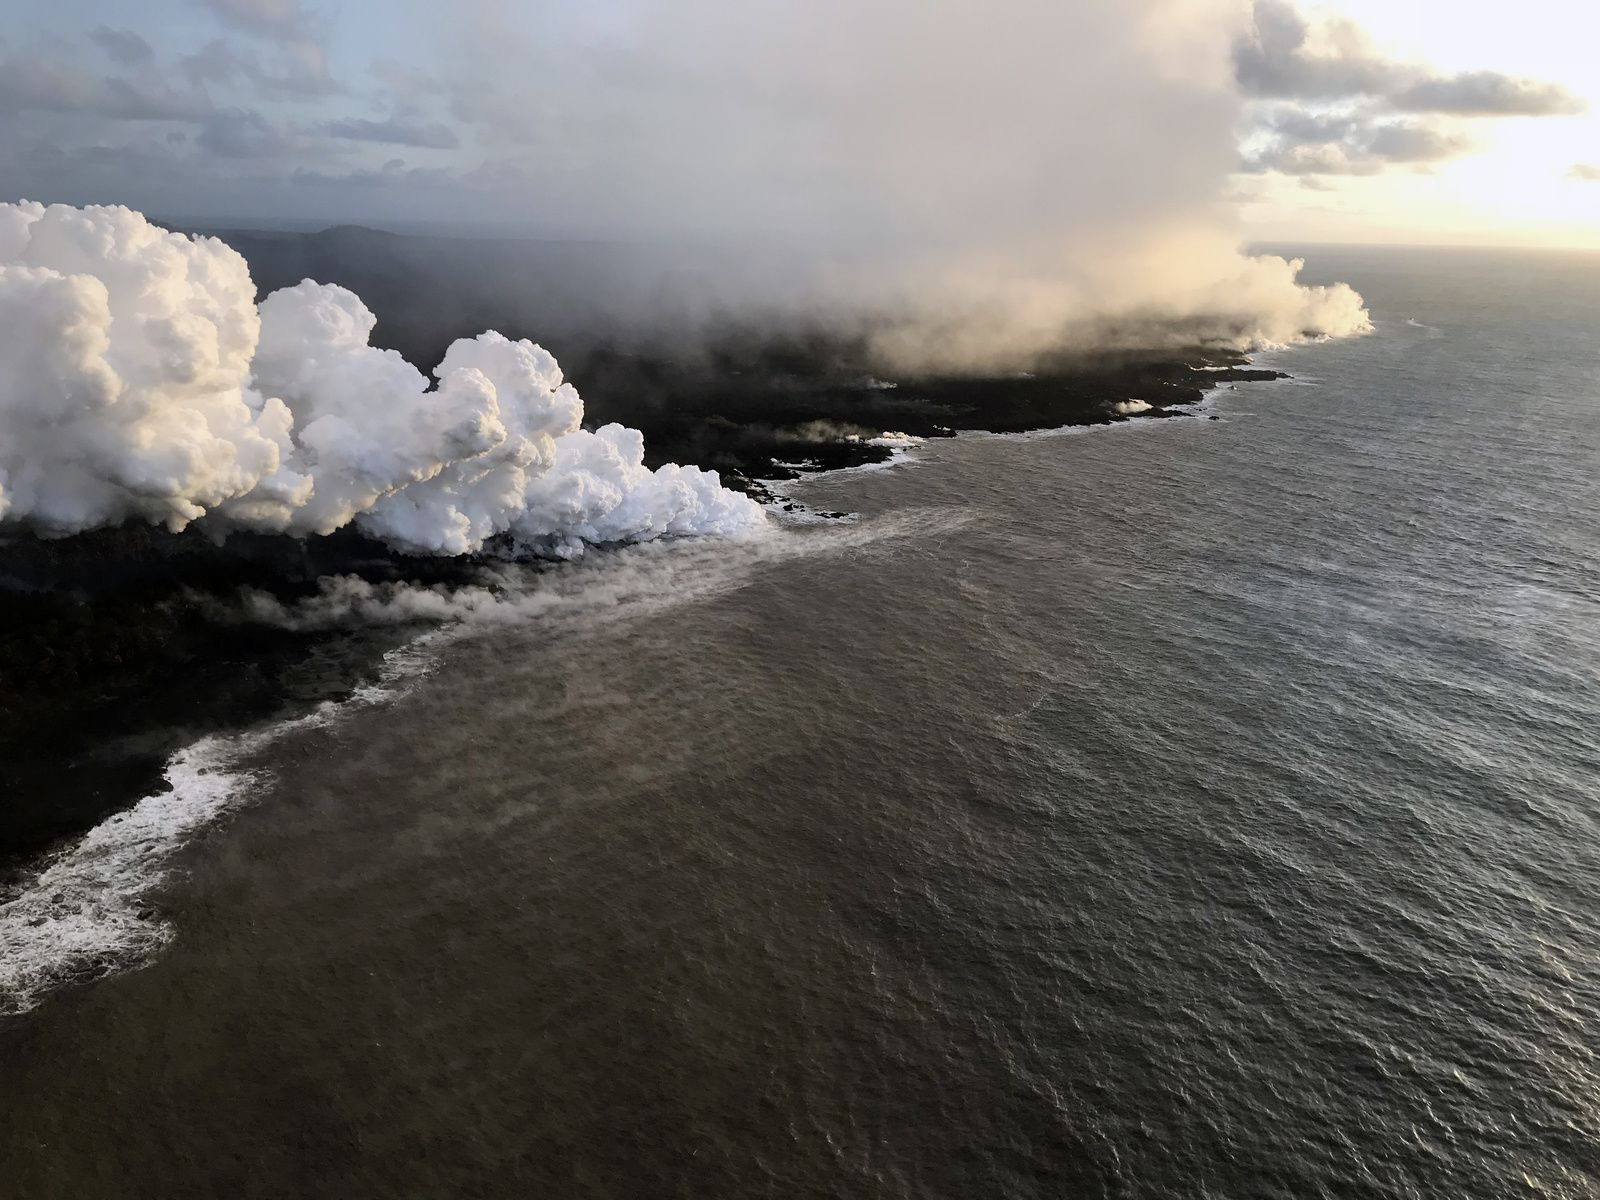 Kilauea East Rift Zone - The entrance to the lava at sea at Ahalanui Park is marked by a large plume of laze (in the center-left) while the fumes are more diffuse on the rest of the ocean front. - photo 12.07.2018 / USGS